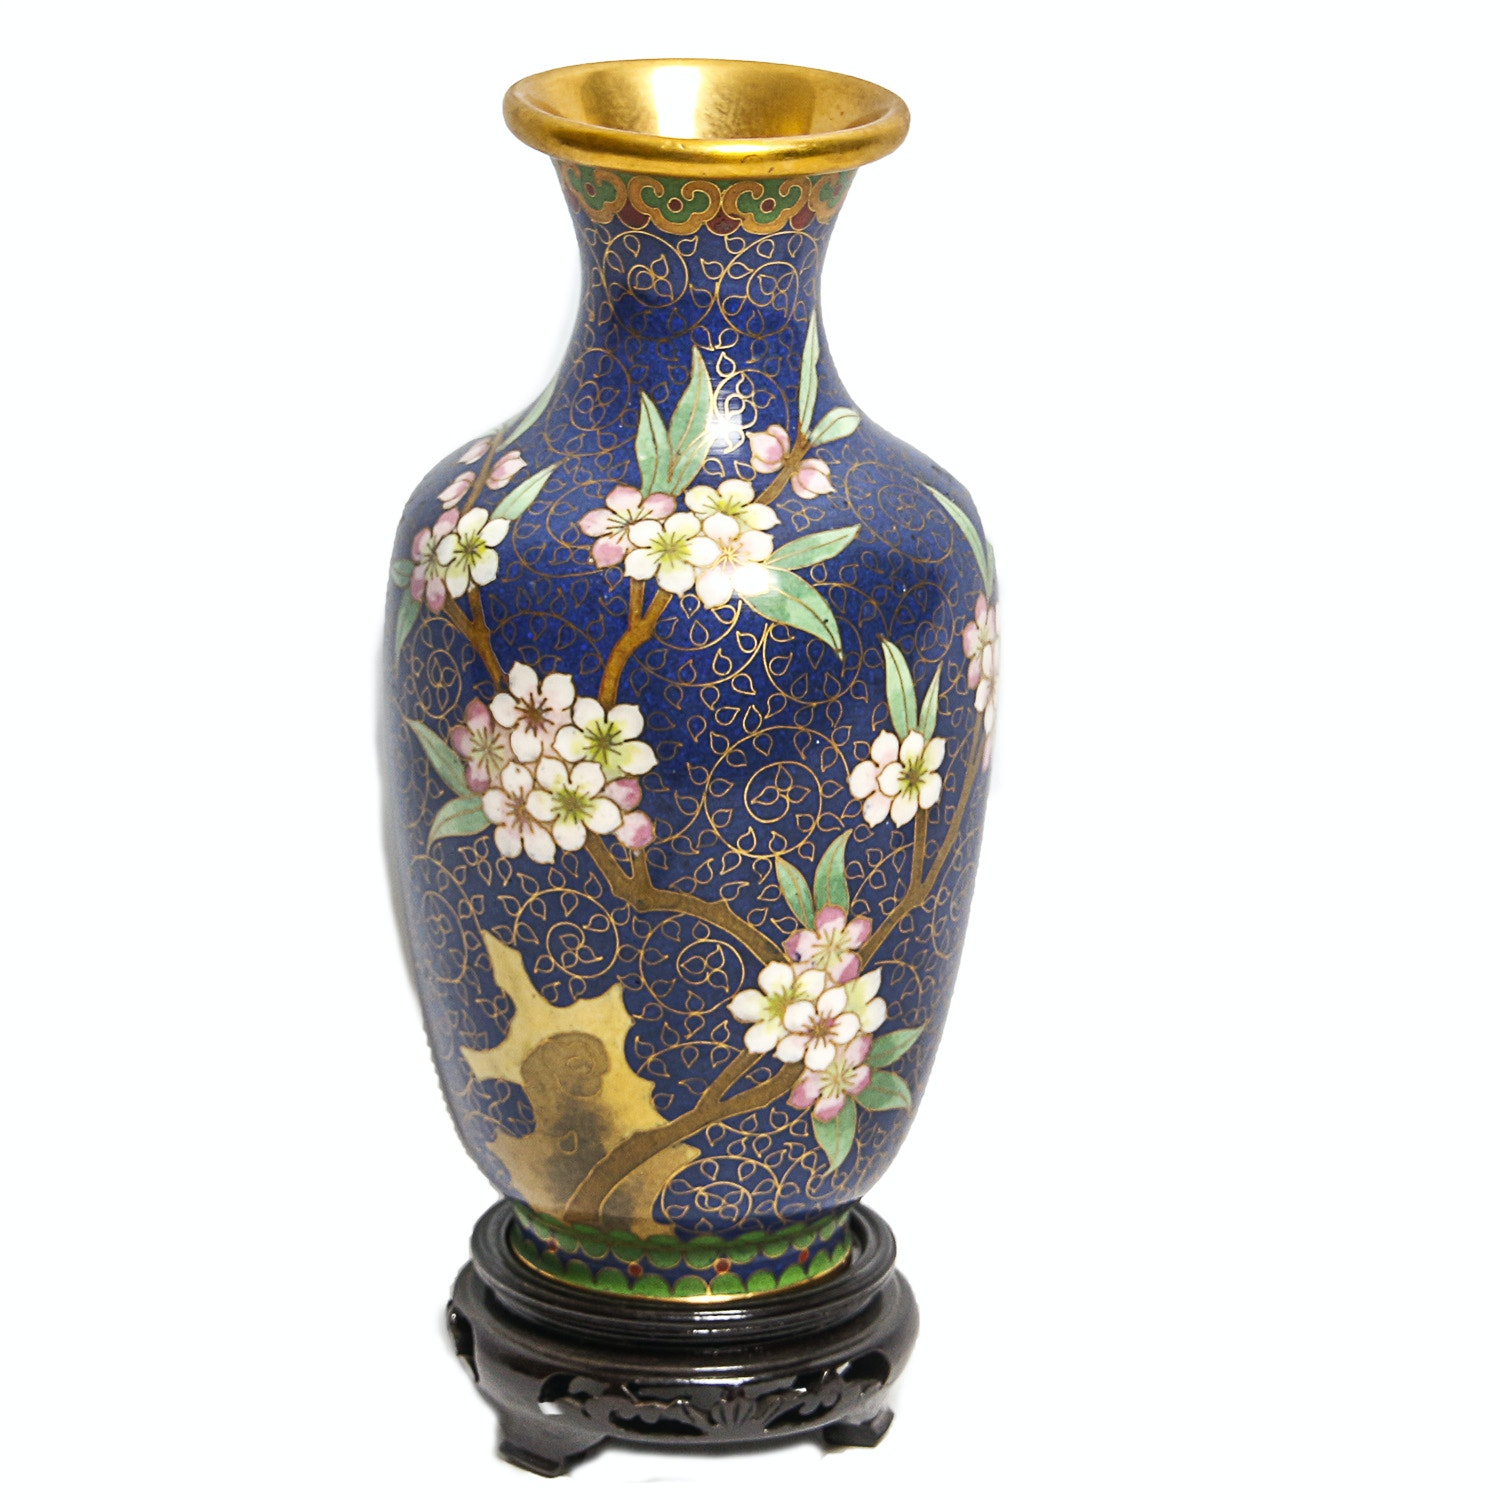 Cloisonné Vase with Cherry Blossoms and Wooden Stand